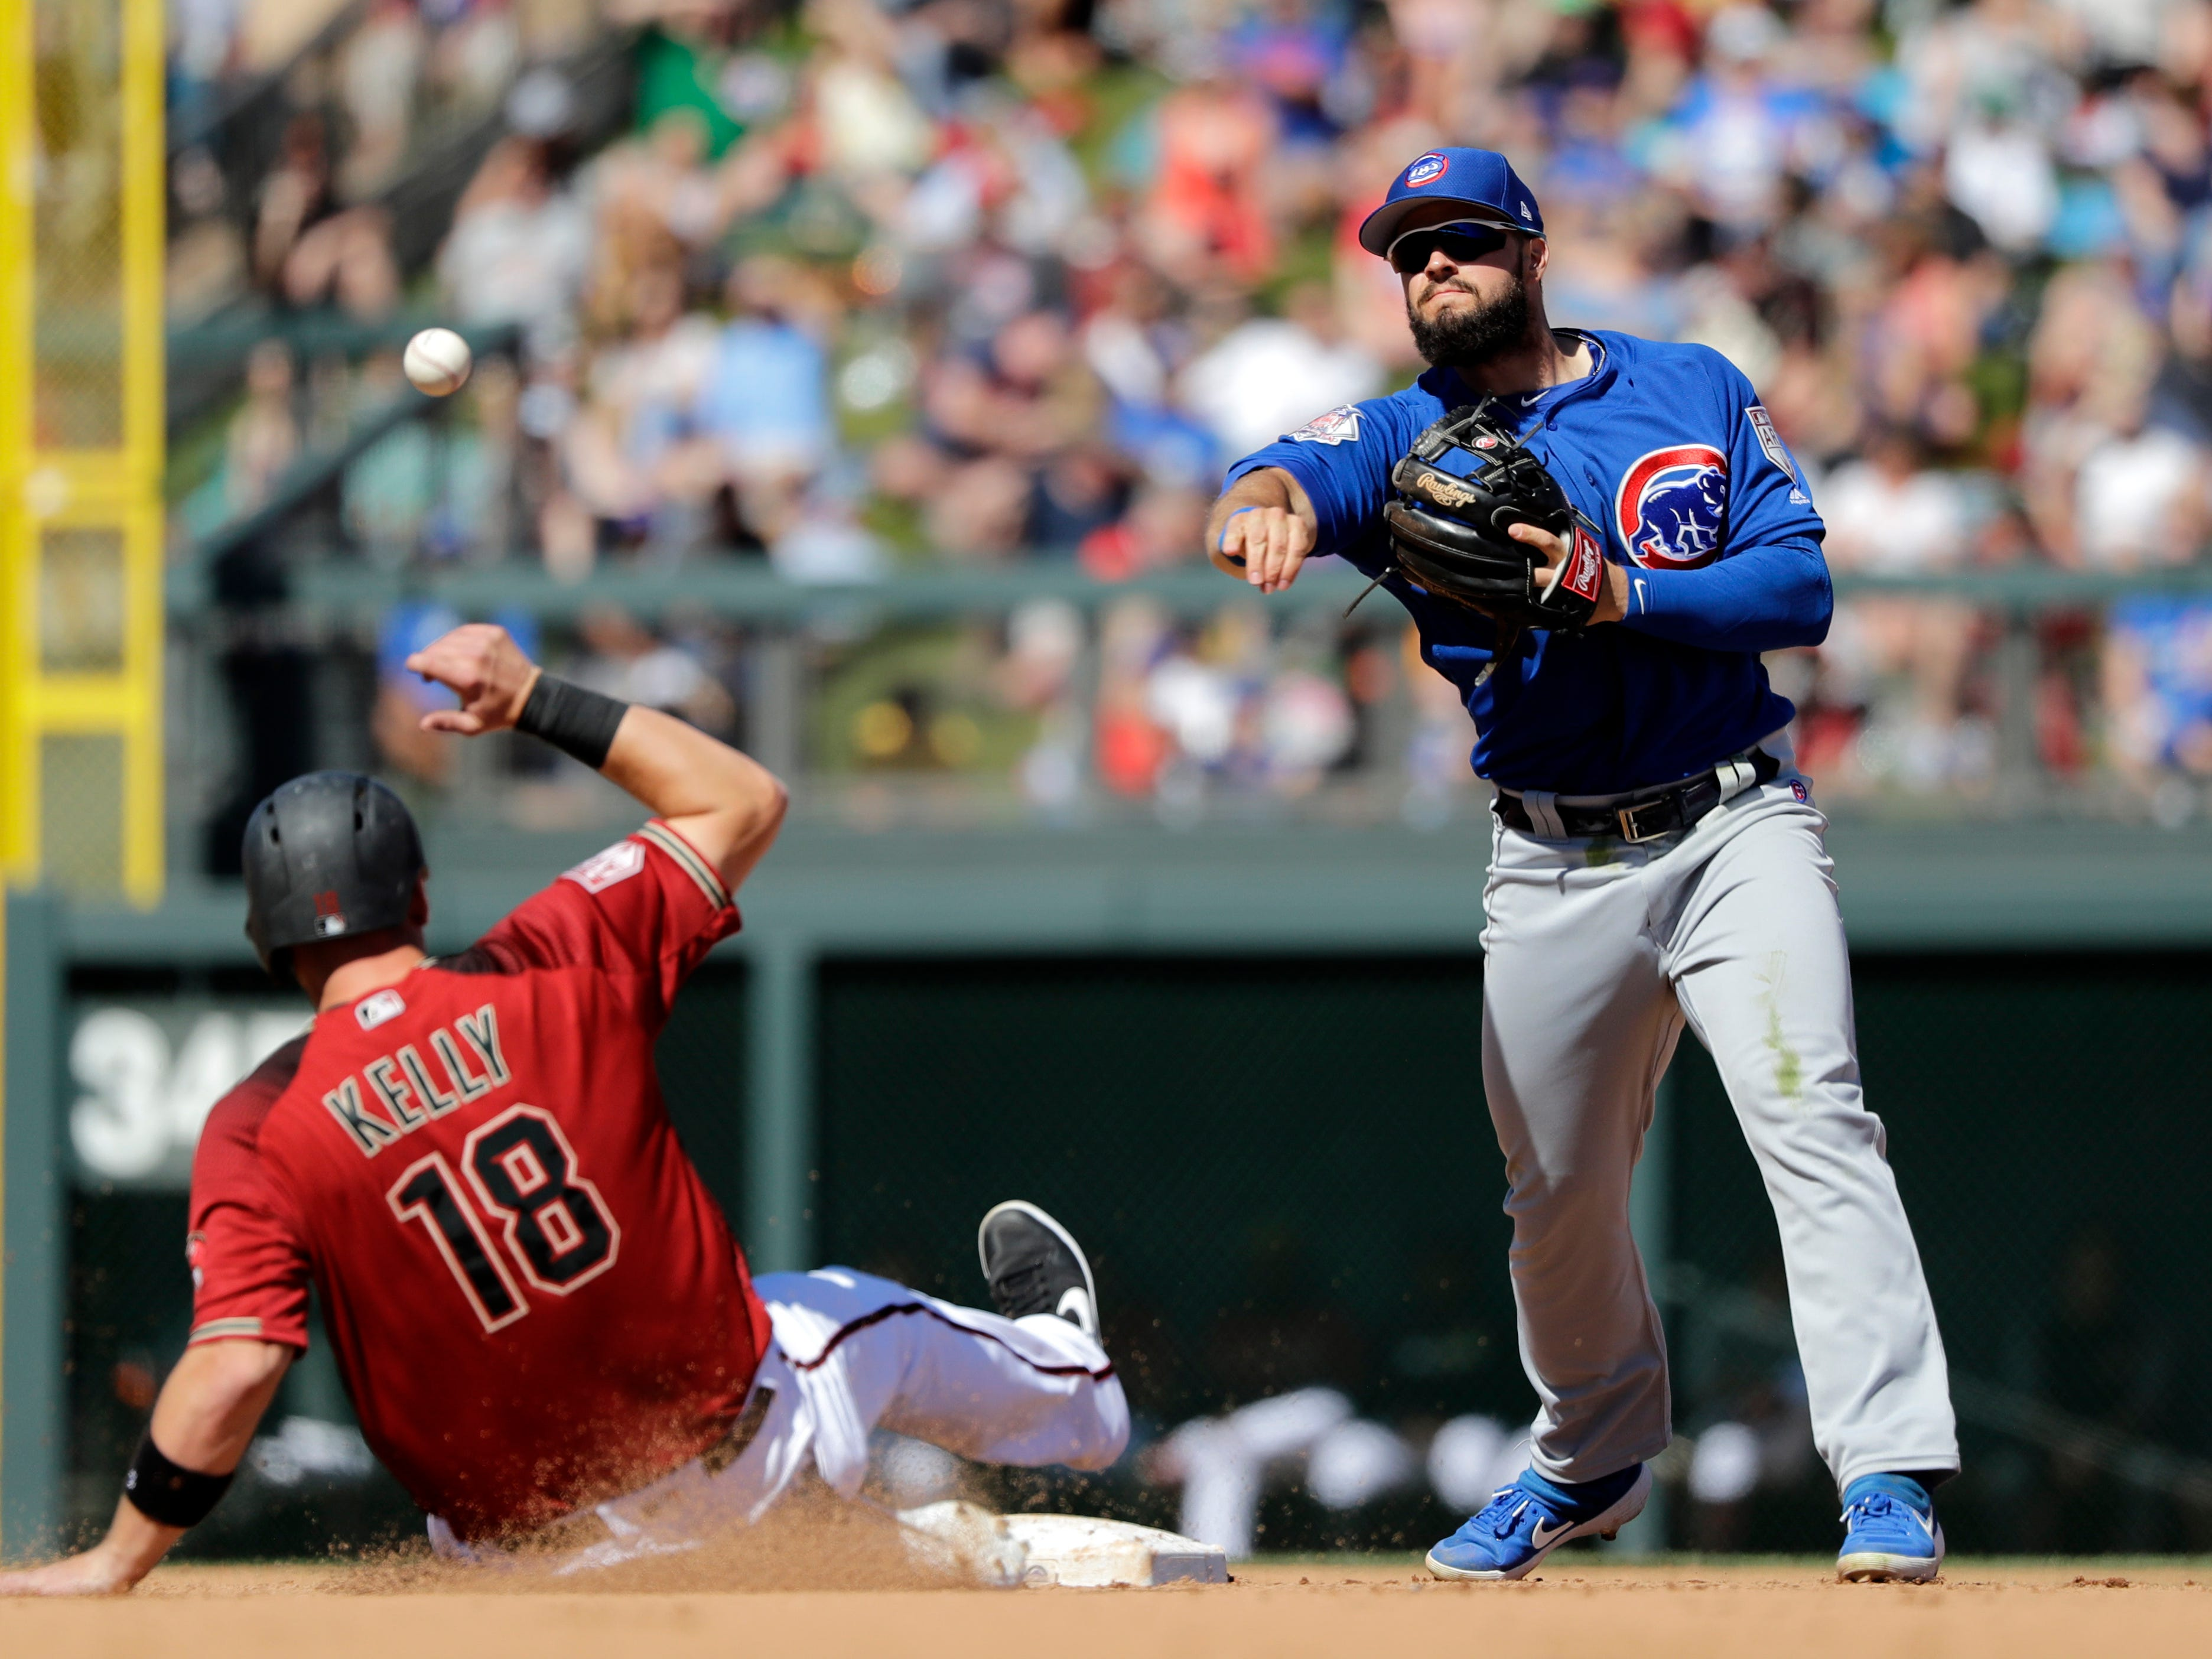 Chicago Cubs second baseman David Bote, right, throws to first base after forcing out Arizona Diamondbacks' Carson Kelly at second base in the fourth inning of a spring training baseball game Saturday, March 16, 2019, in Scottsdale, Ariz. Diamondbacks' Matt Szczur was safe at first on the fielder's choice.